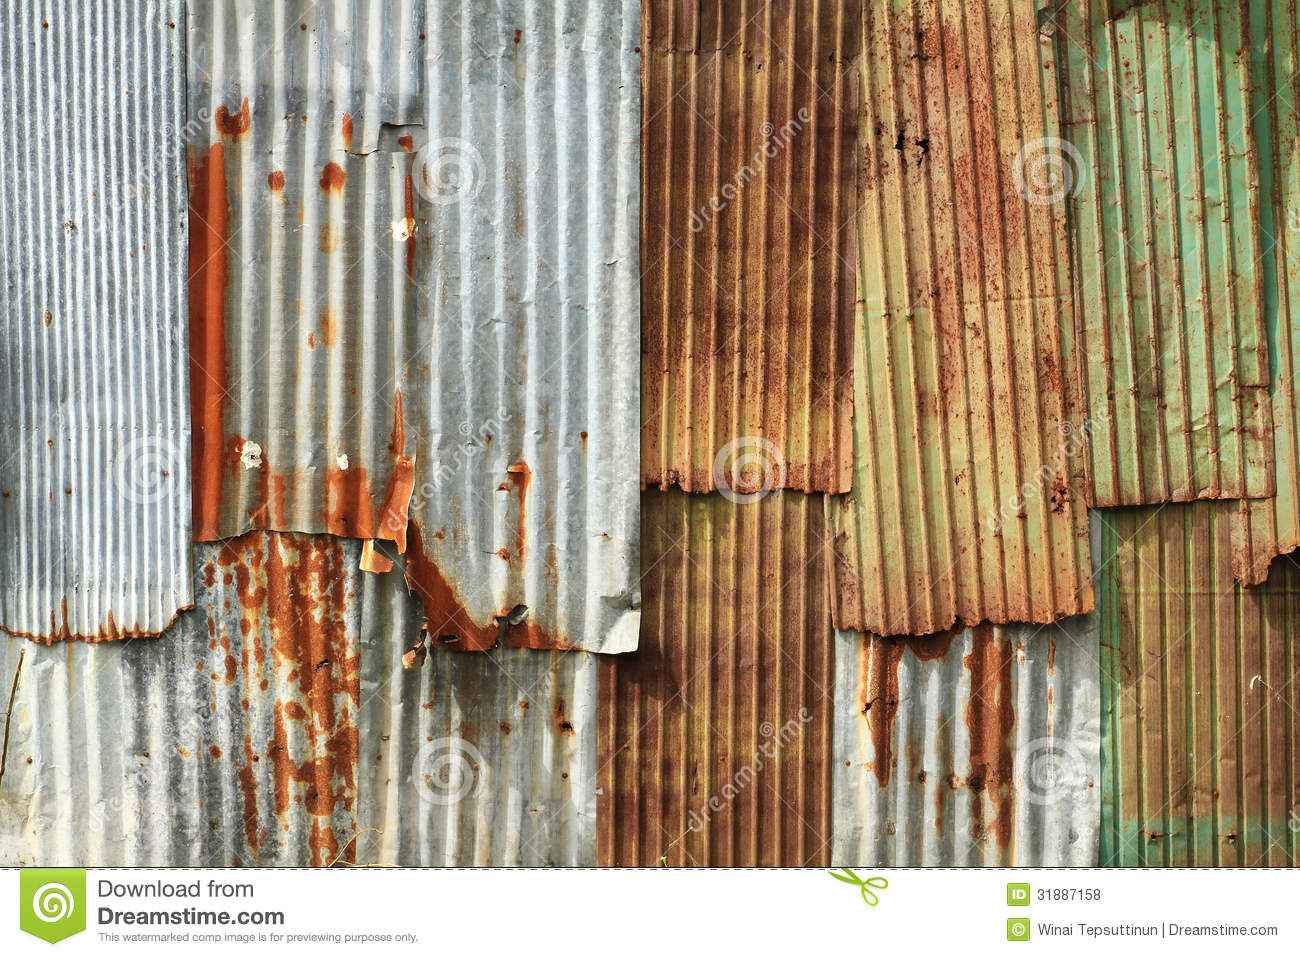 Corrugated Metal Wall Royalty Free Stock Photos - Image: 31887158